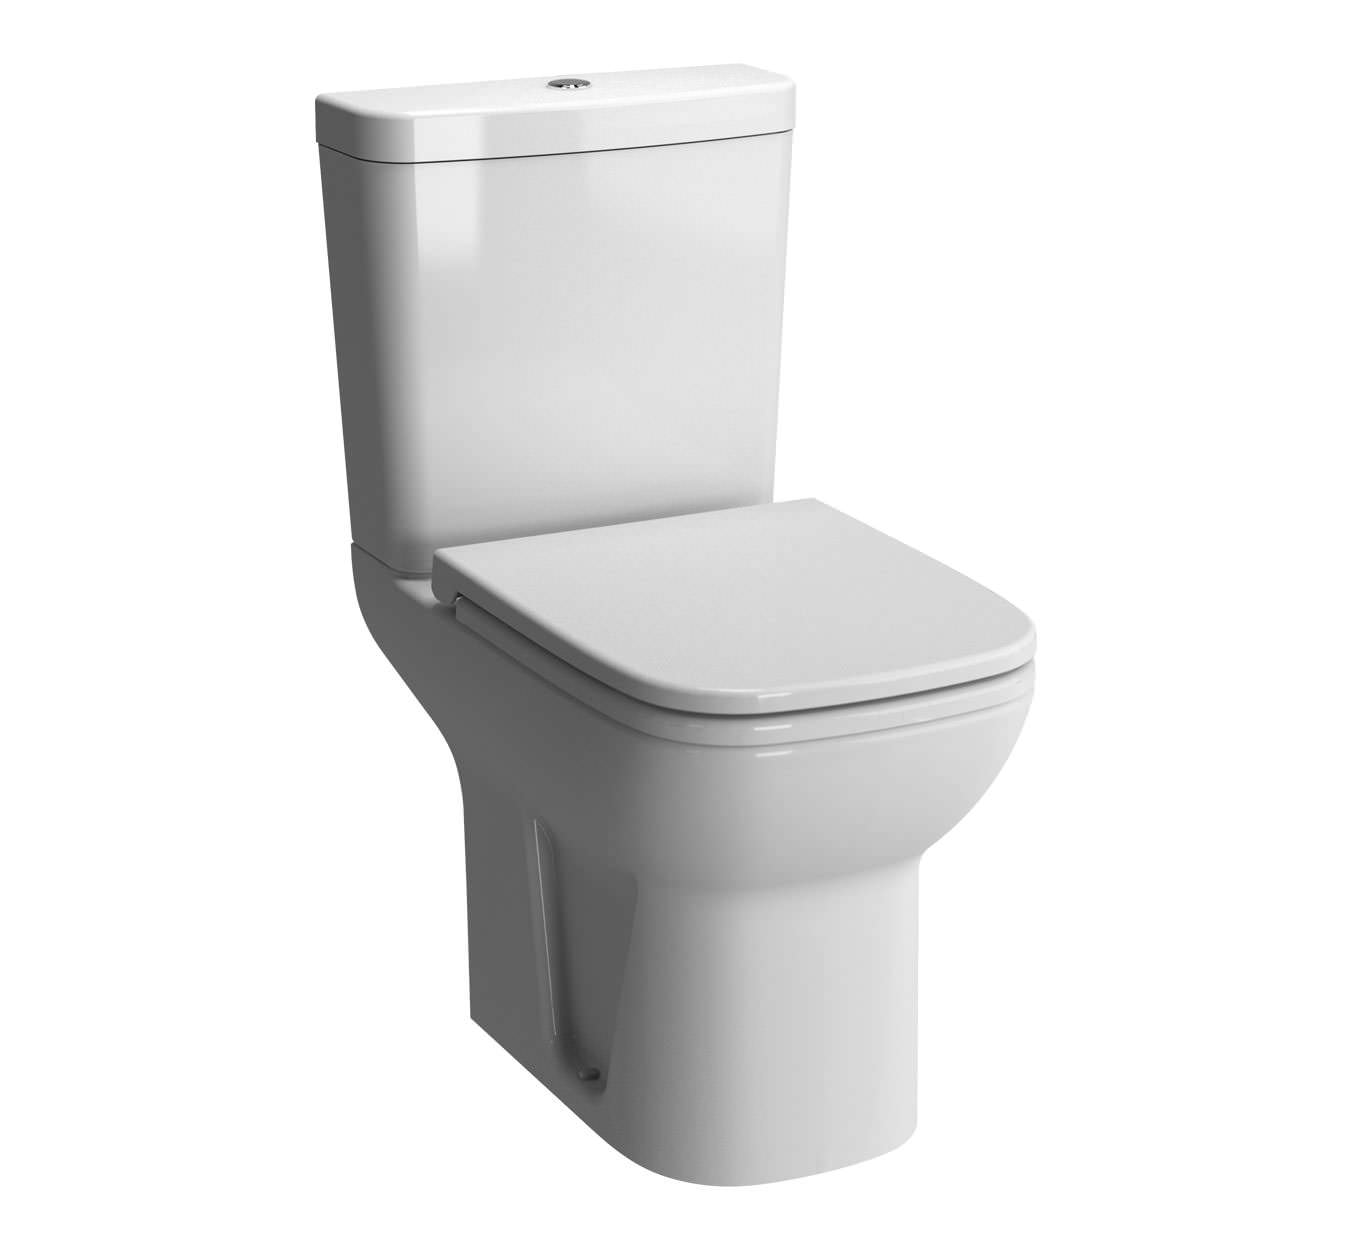 Vitra S20 Close Coupled Wc Pan With Cistern 5513l003 0075